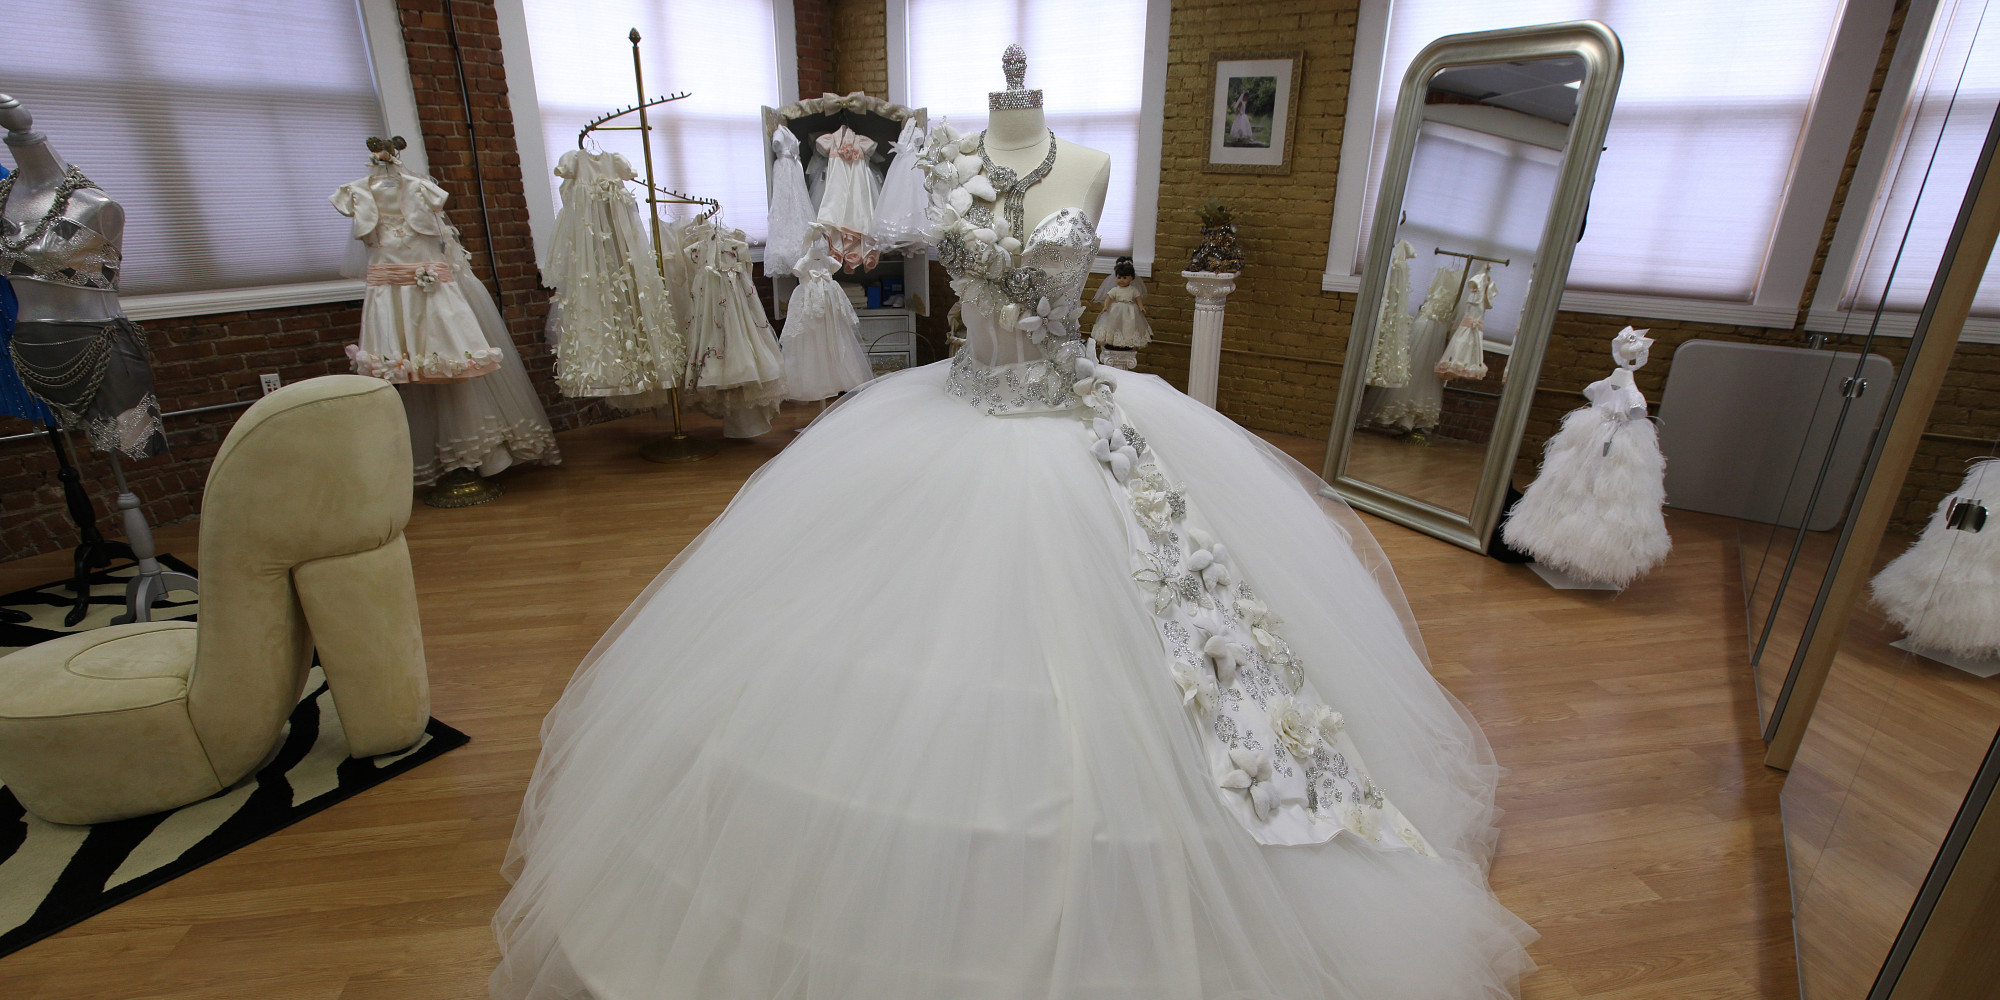 80 pound wedding dresses bedazzled in jewels this gypsy designer has